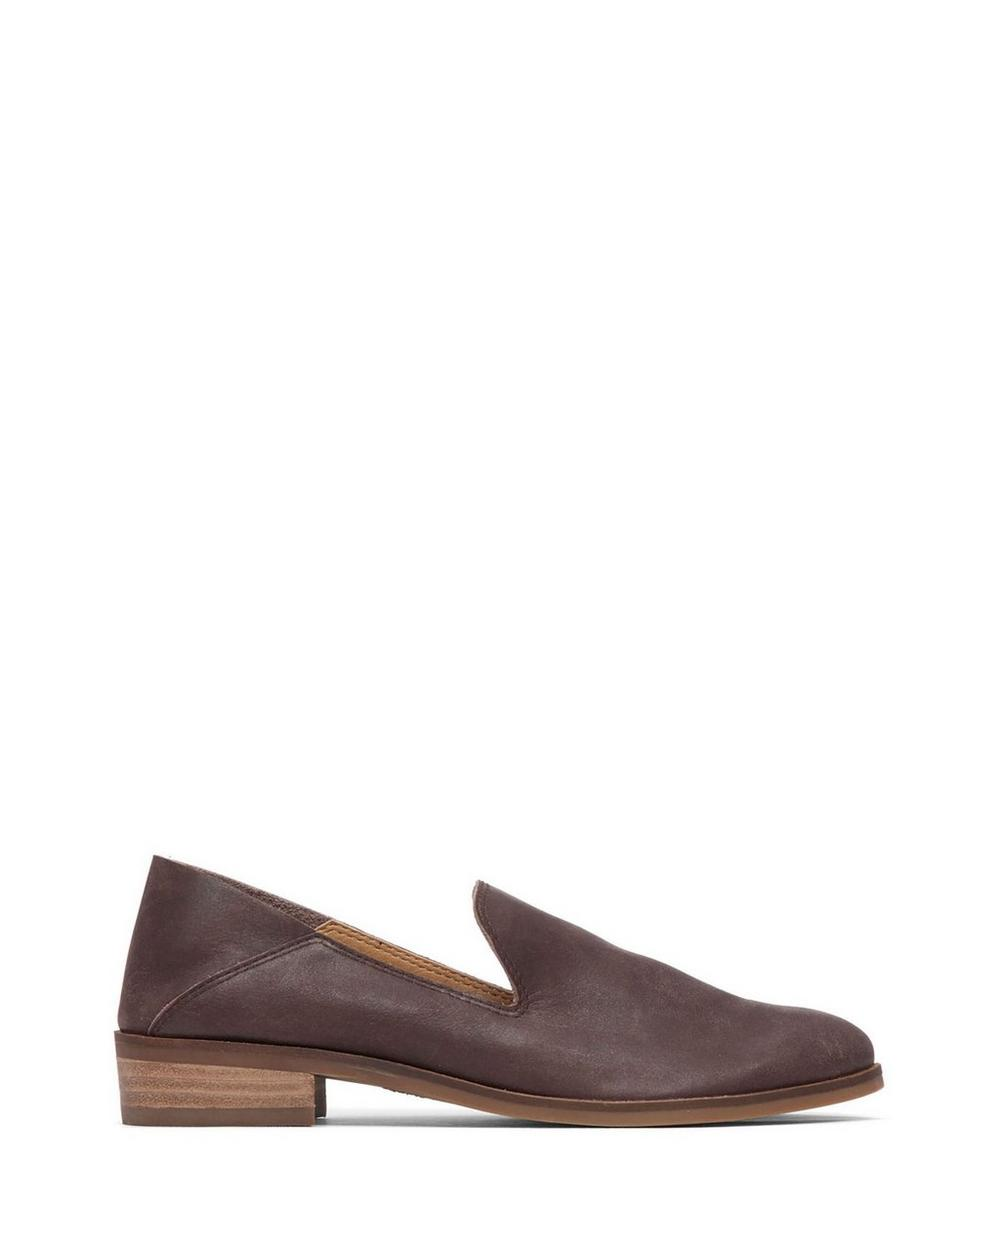 CAHILL LEATHER FLAT, image 8